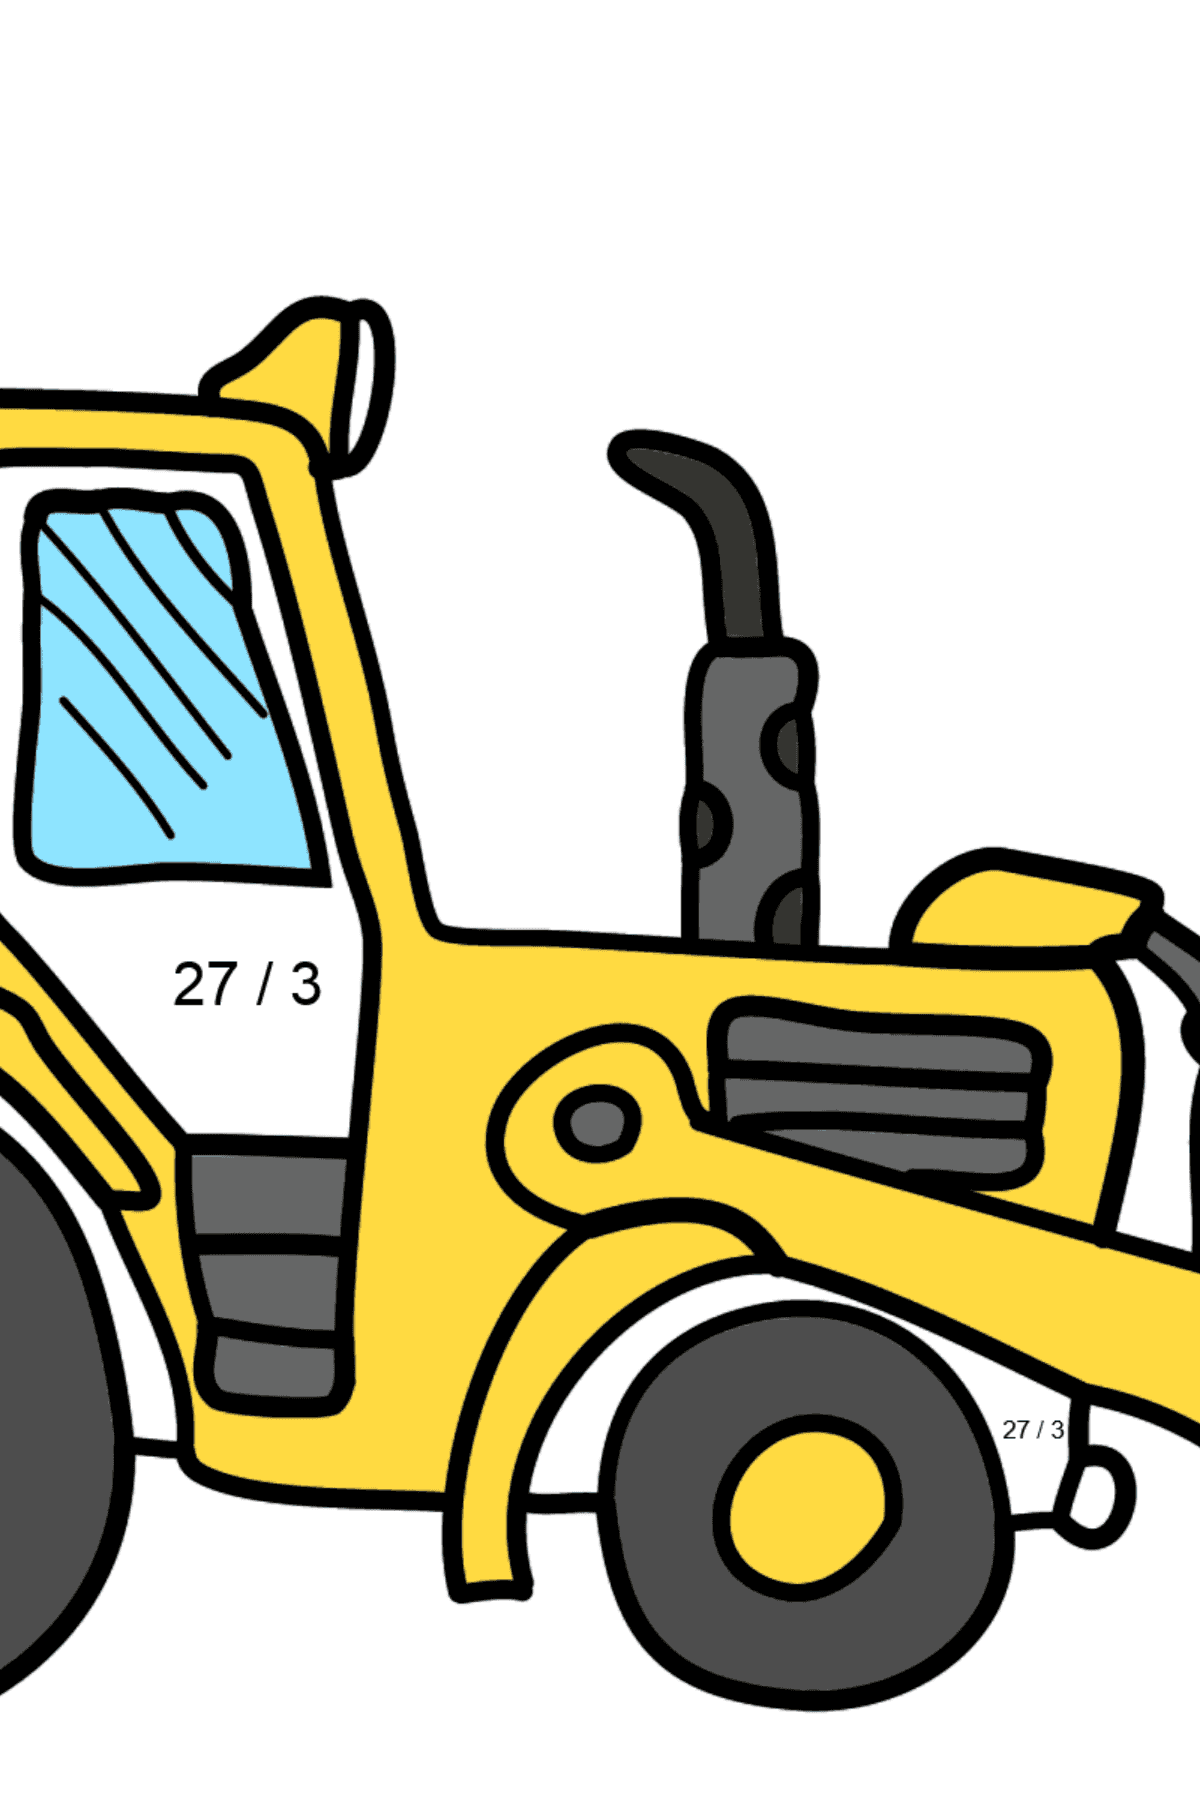 Coloring Page - A Yellow Tractor - Math Coloring - Division for Kids